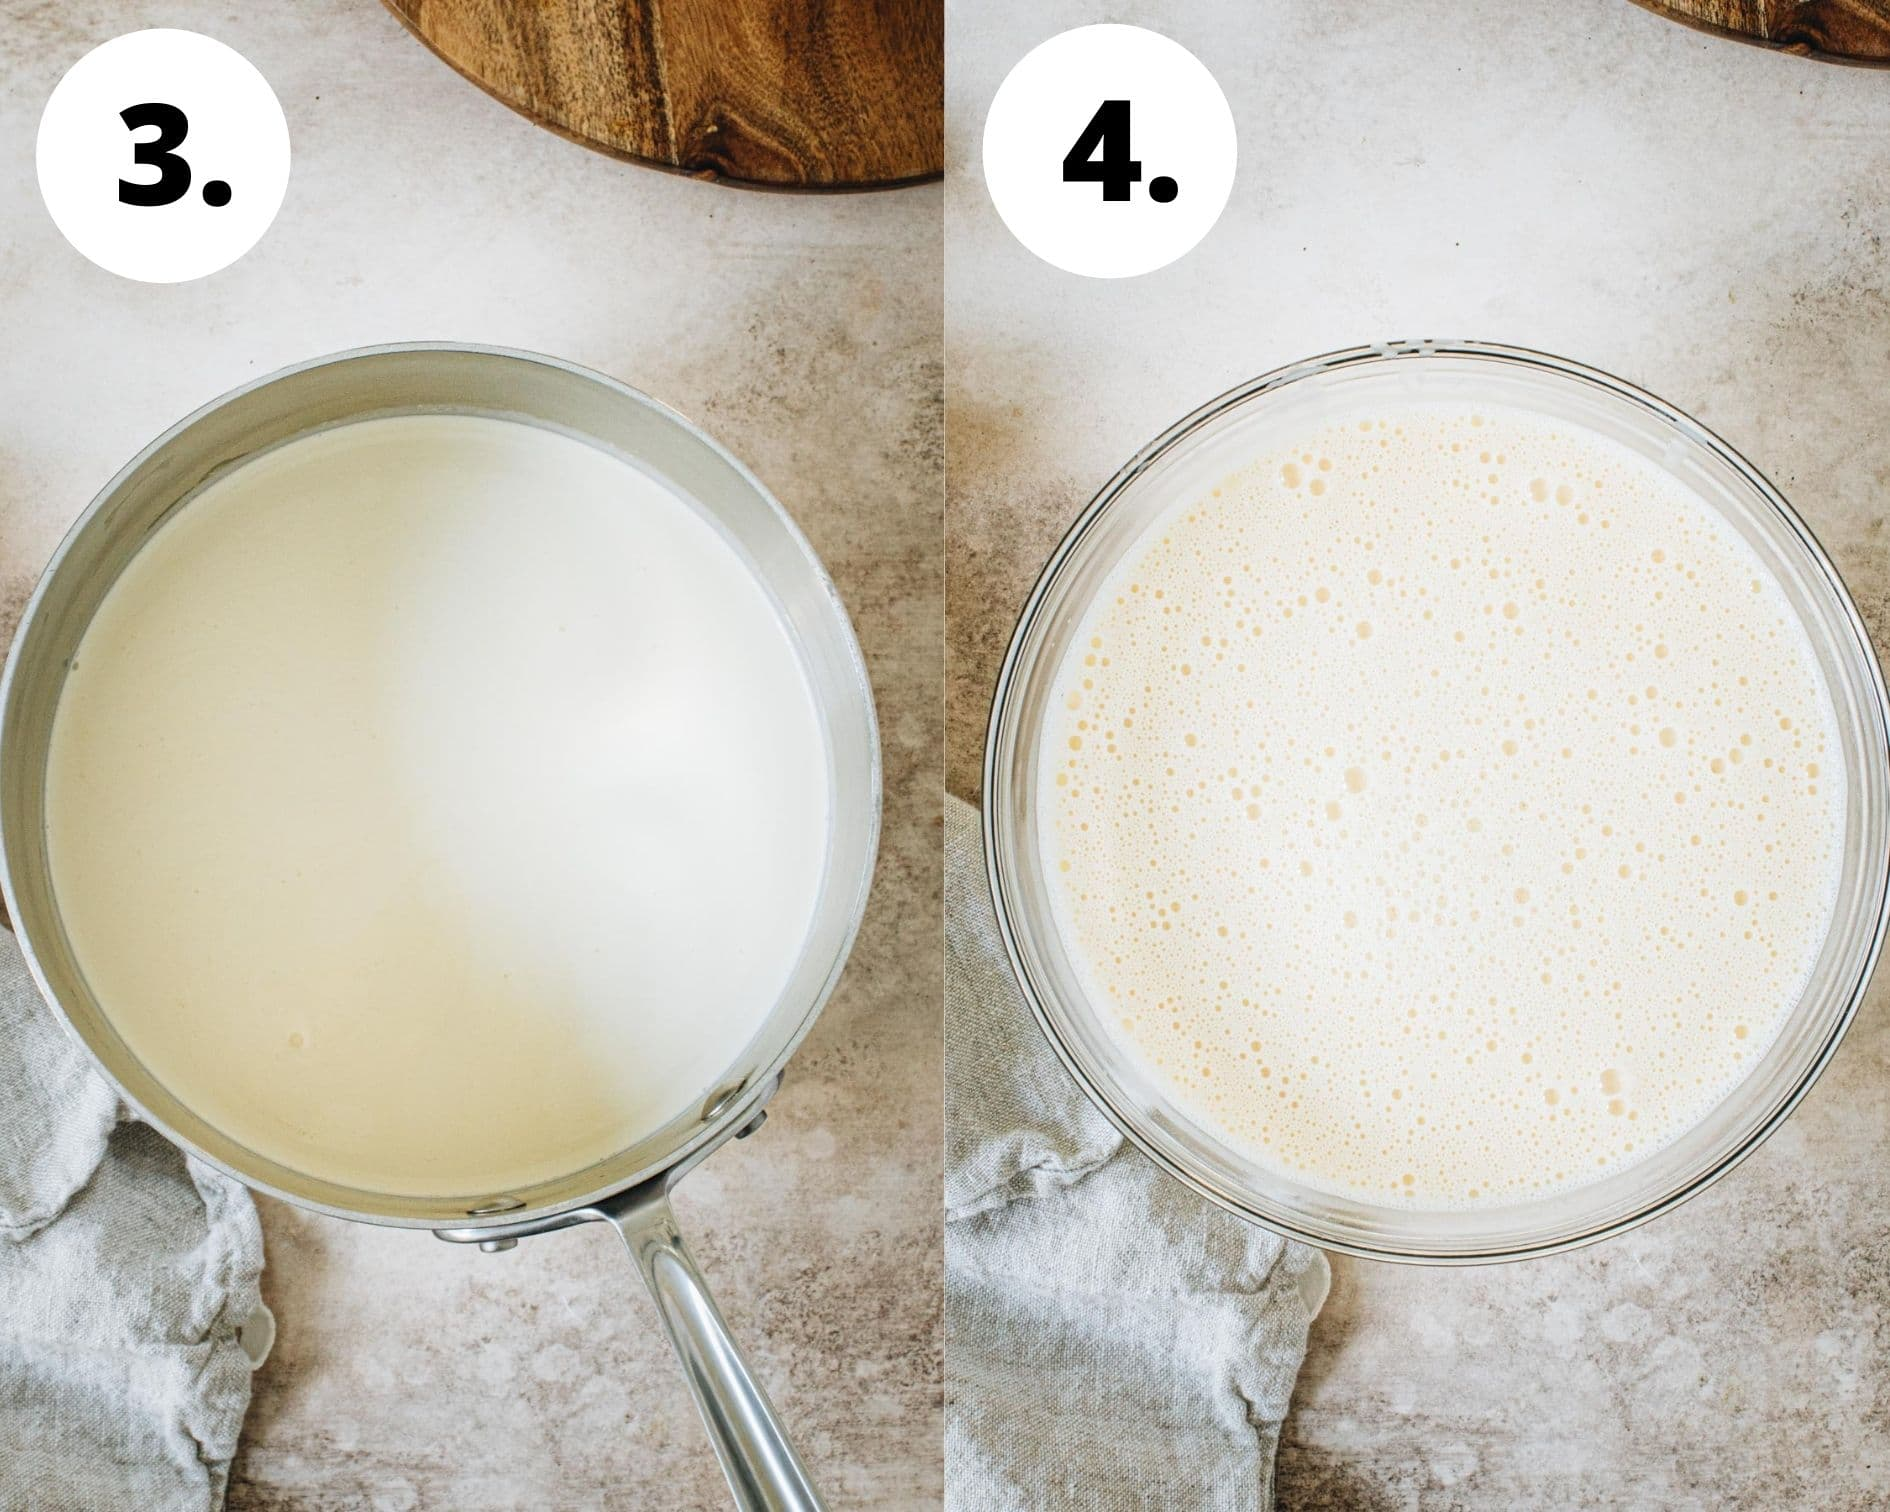 S'mores pie process steps 3 and 4.